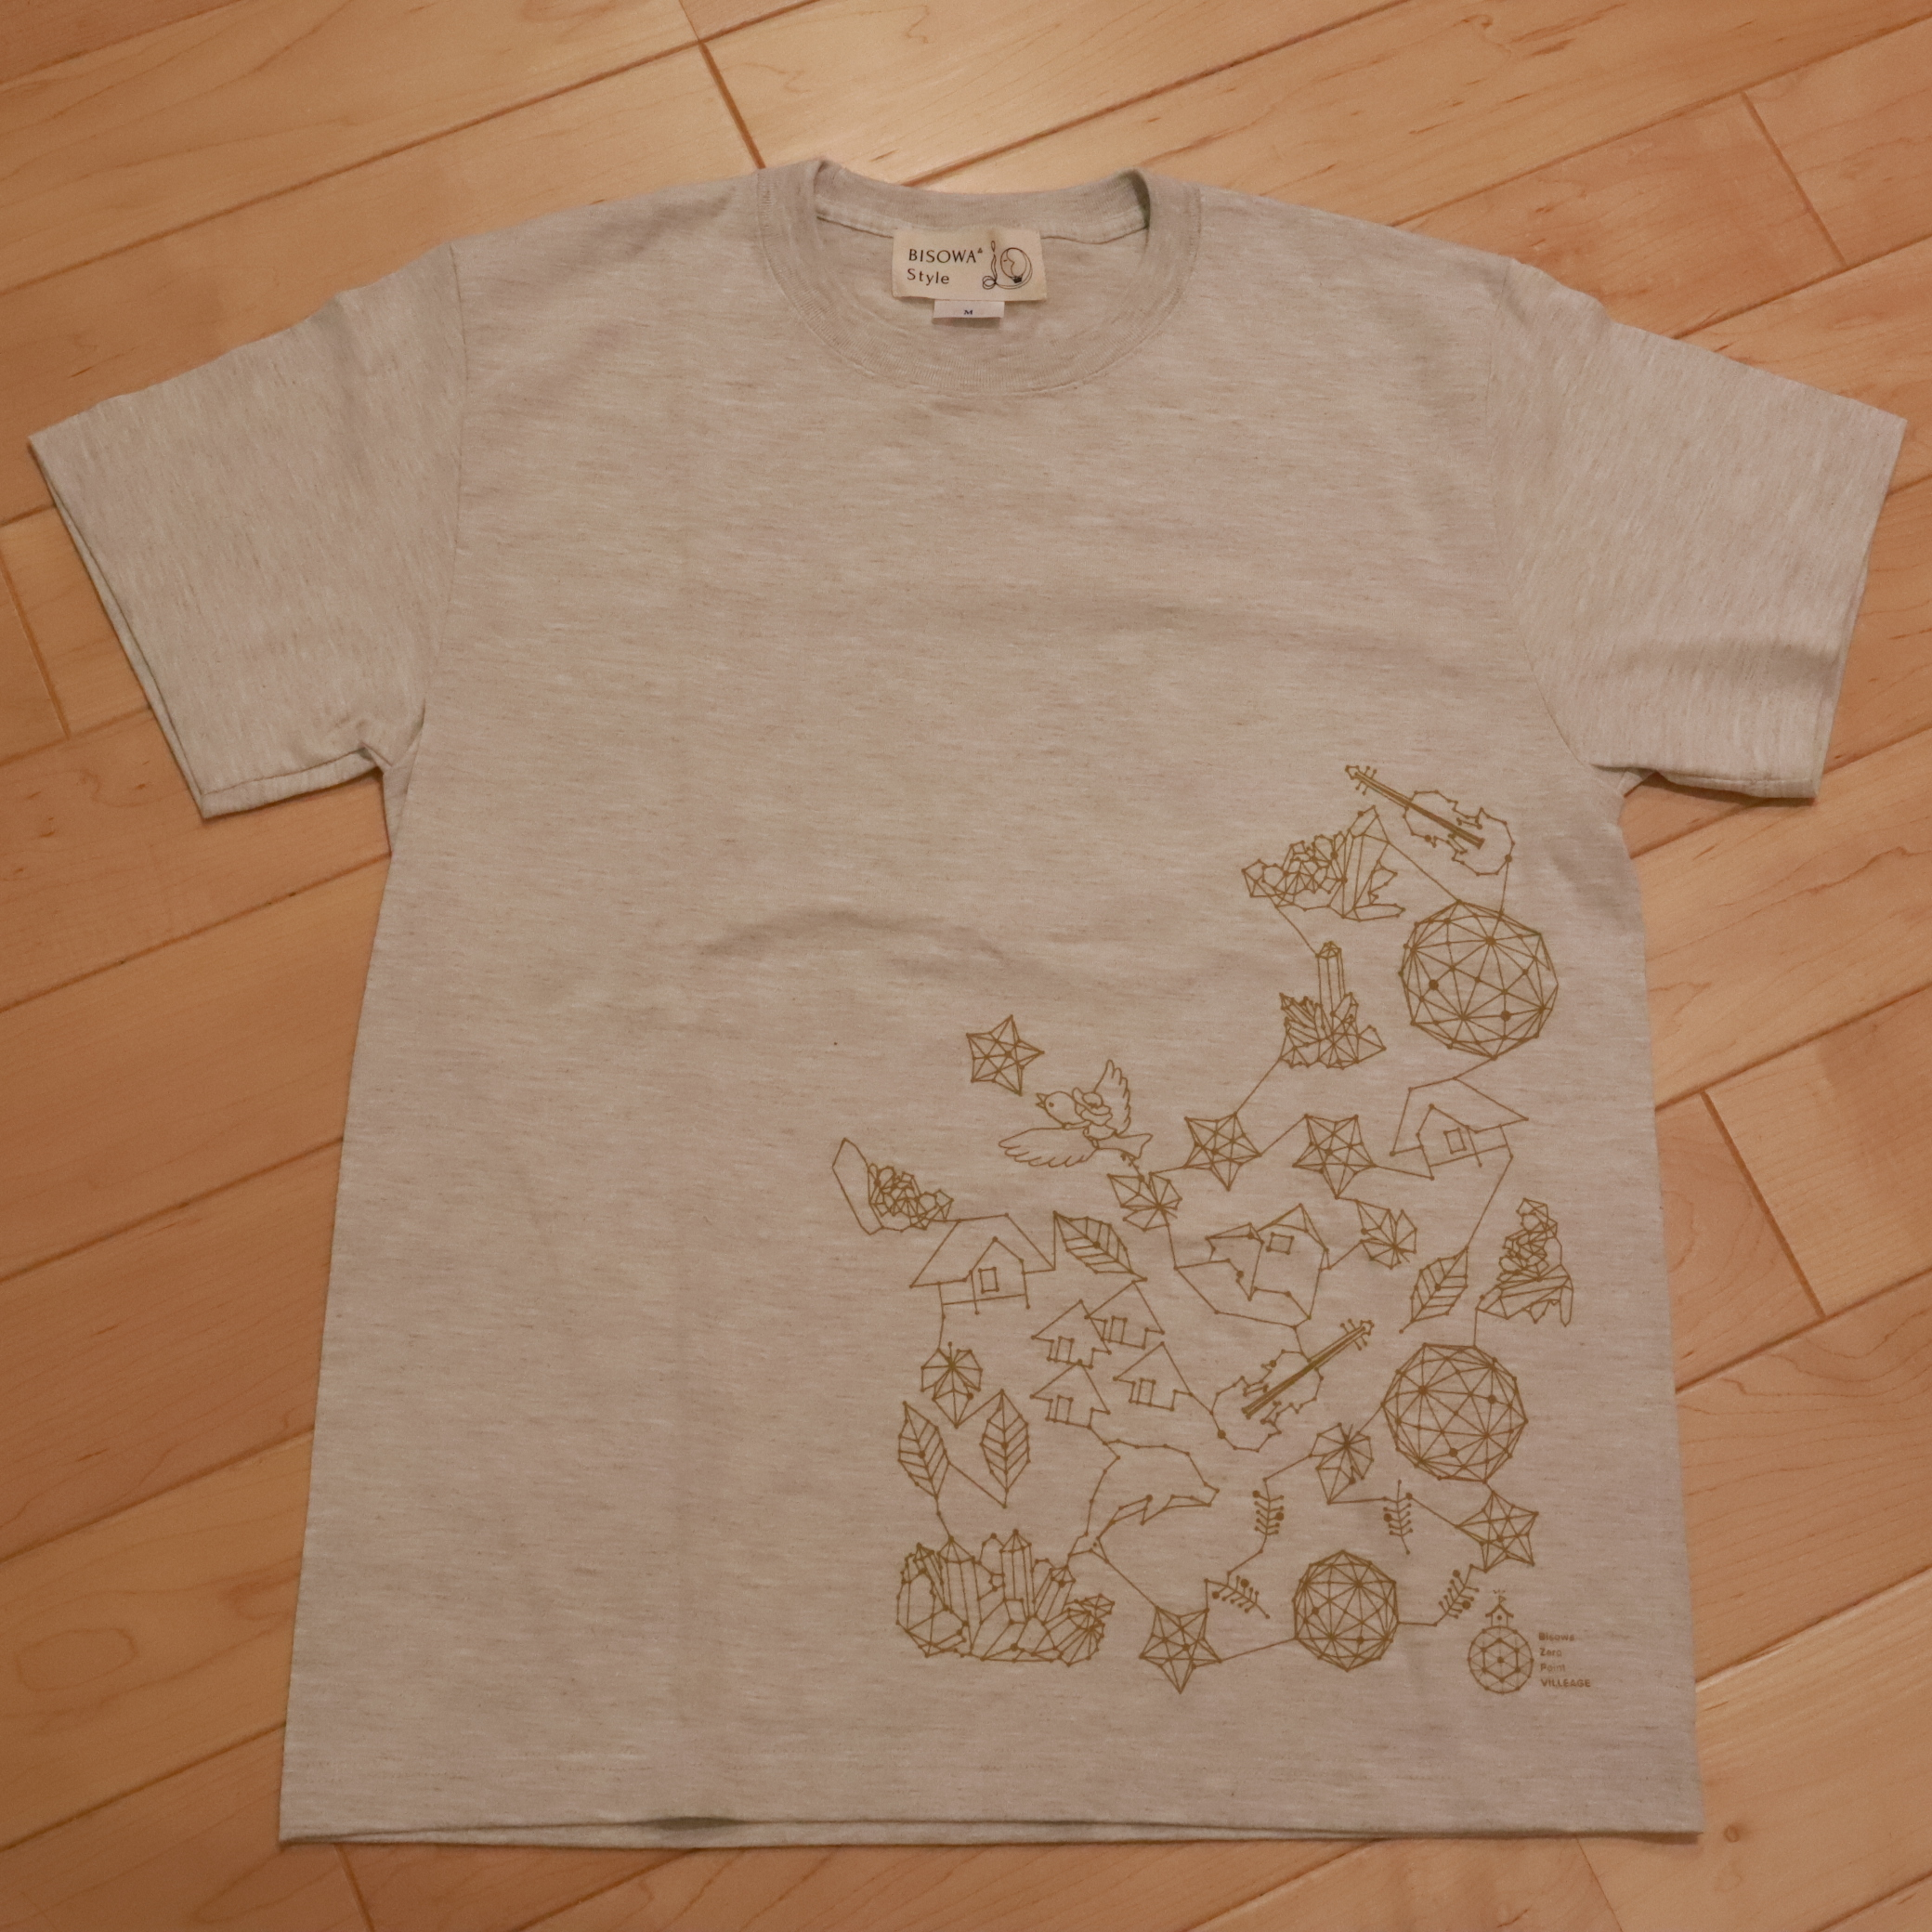 BISOWA T-SHIRT